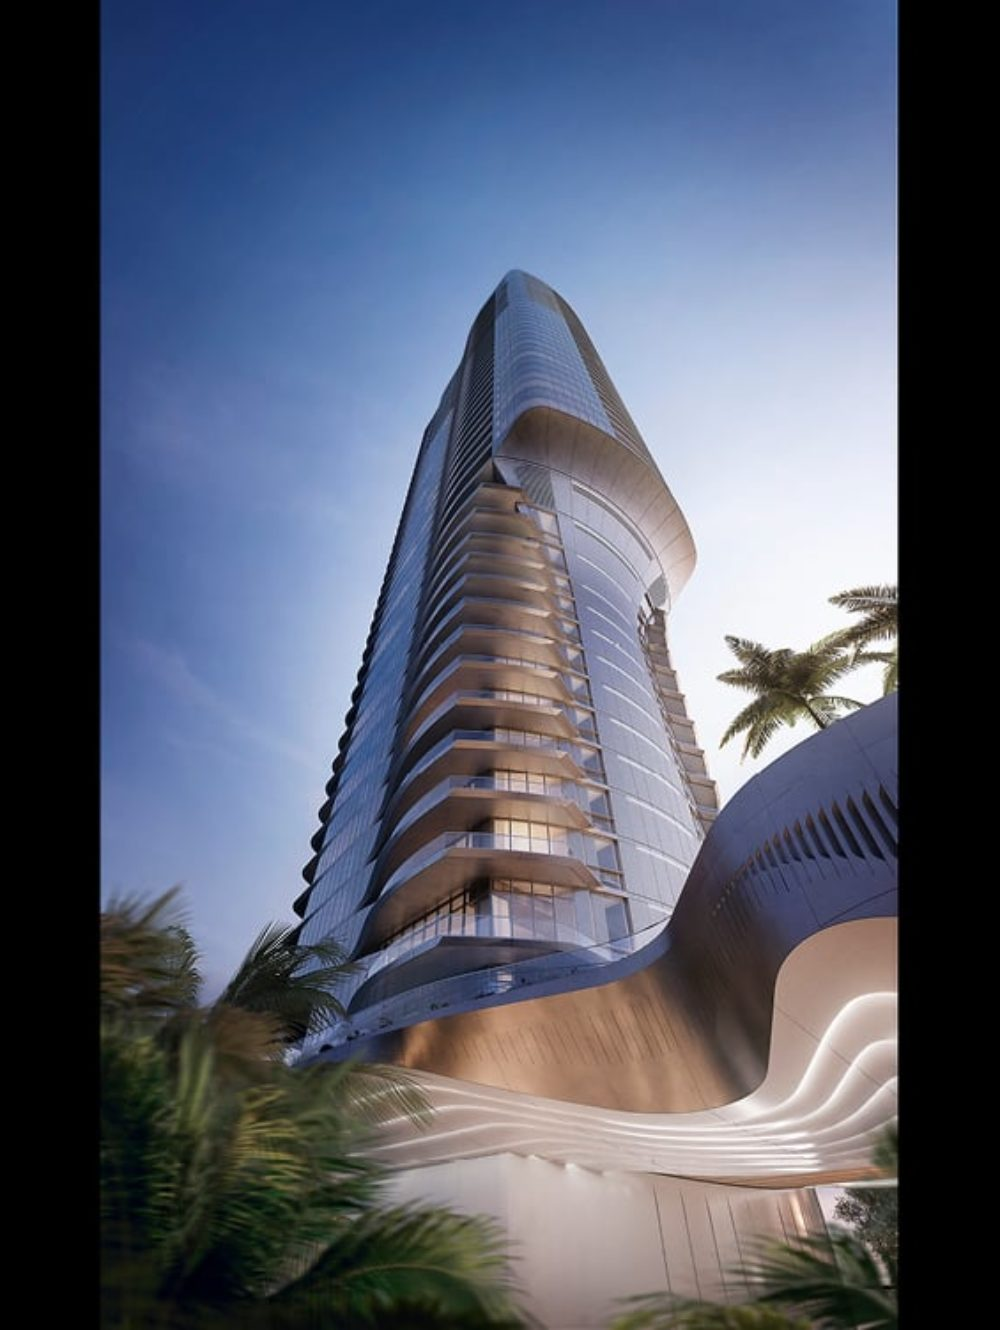 Rending of Una Residences high rise condo in Miami. Ground view looking up to the top of the condominium and blue sky.